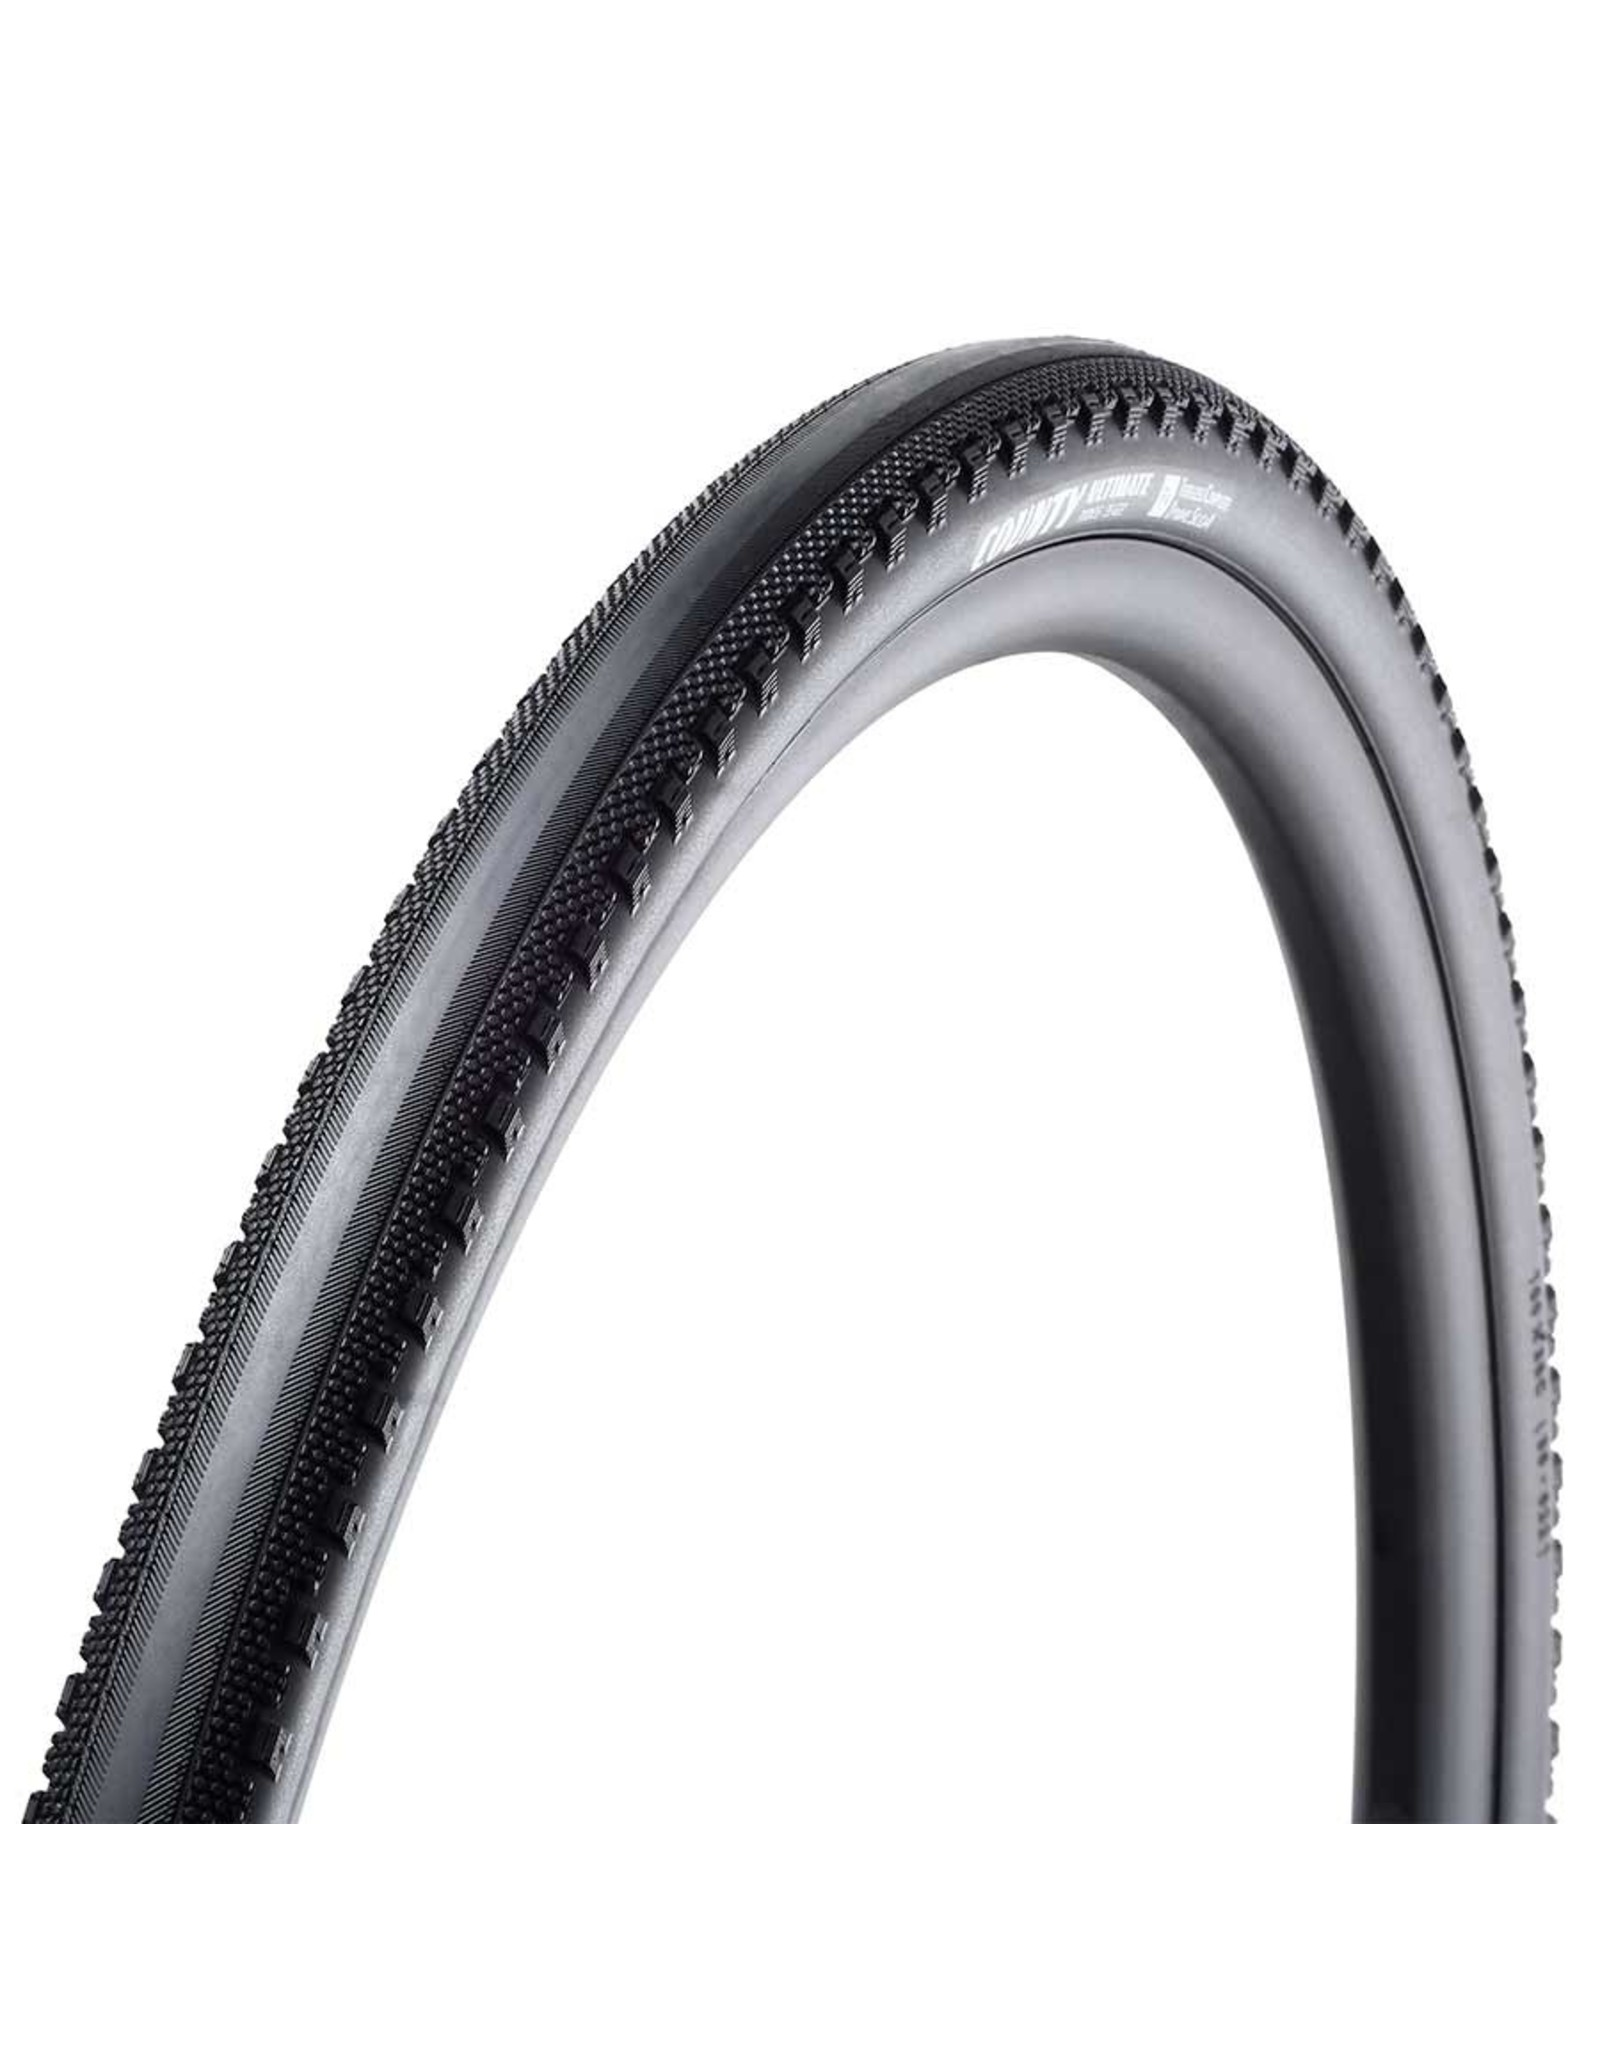 Goodyear Goodyear, County, Tire, 700x35C, Folding, Tubeless Ready, Dynamic:A/T, Ultimate, 120TPI, Black